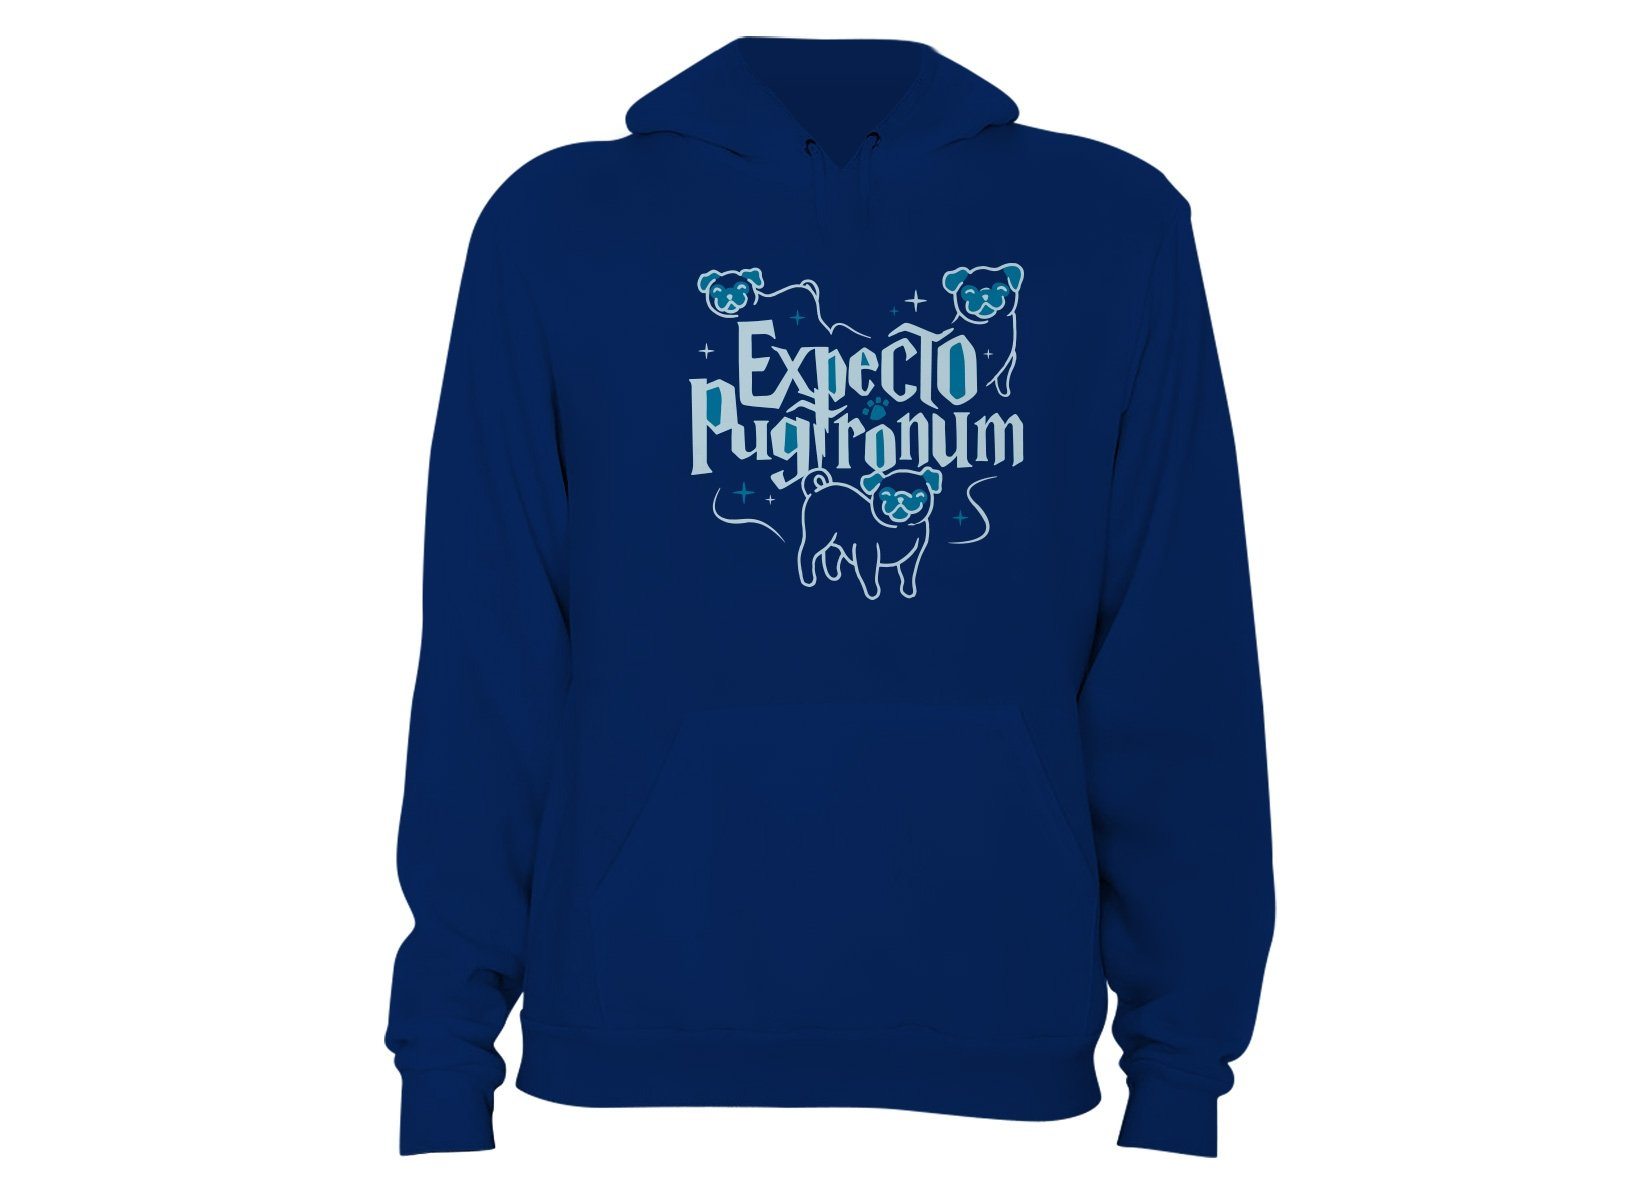 Expecto Pugtronum on Hoodie